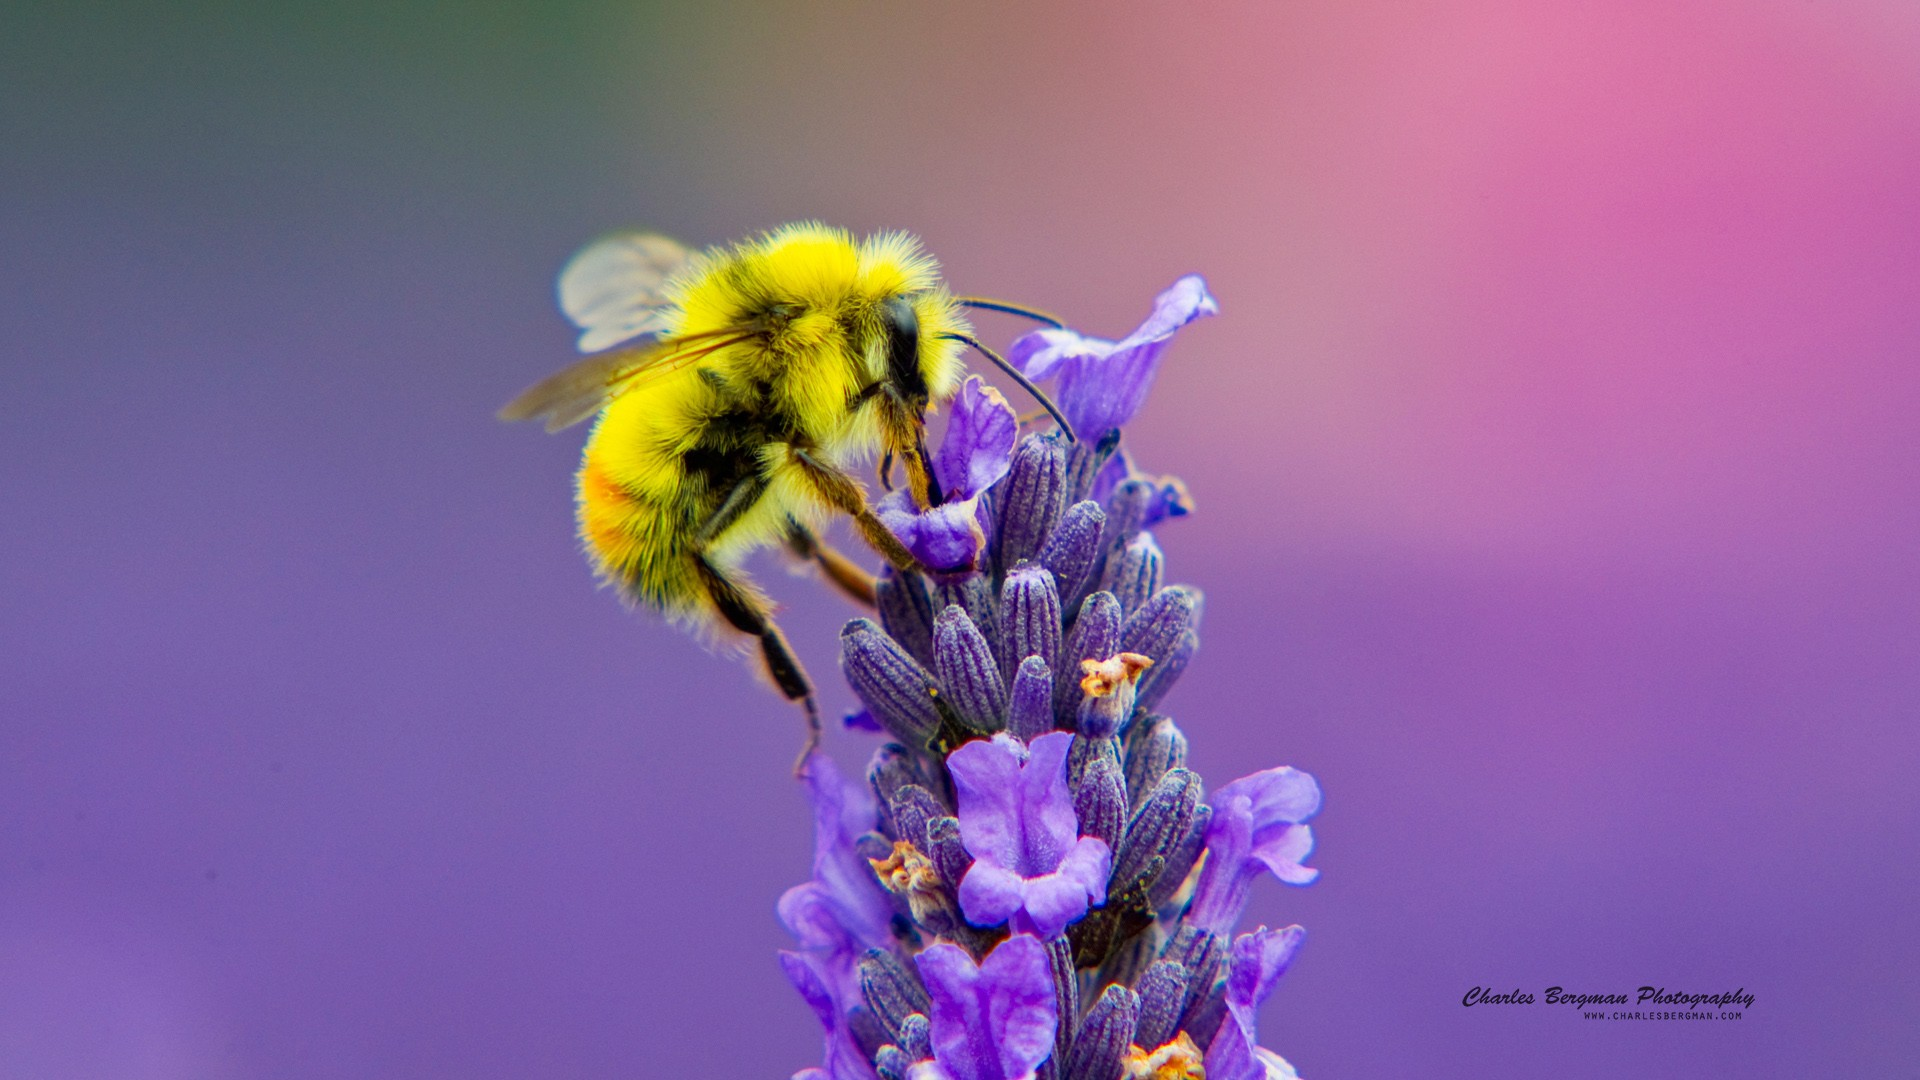 Cute Bumble Bee Wallpaper Honey Bee Lavendar Nectar Wallpapers Hd Wallpapers Id